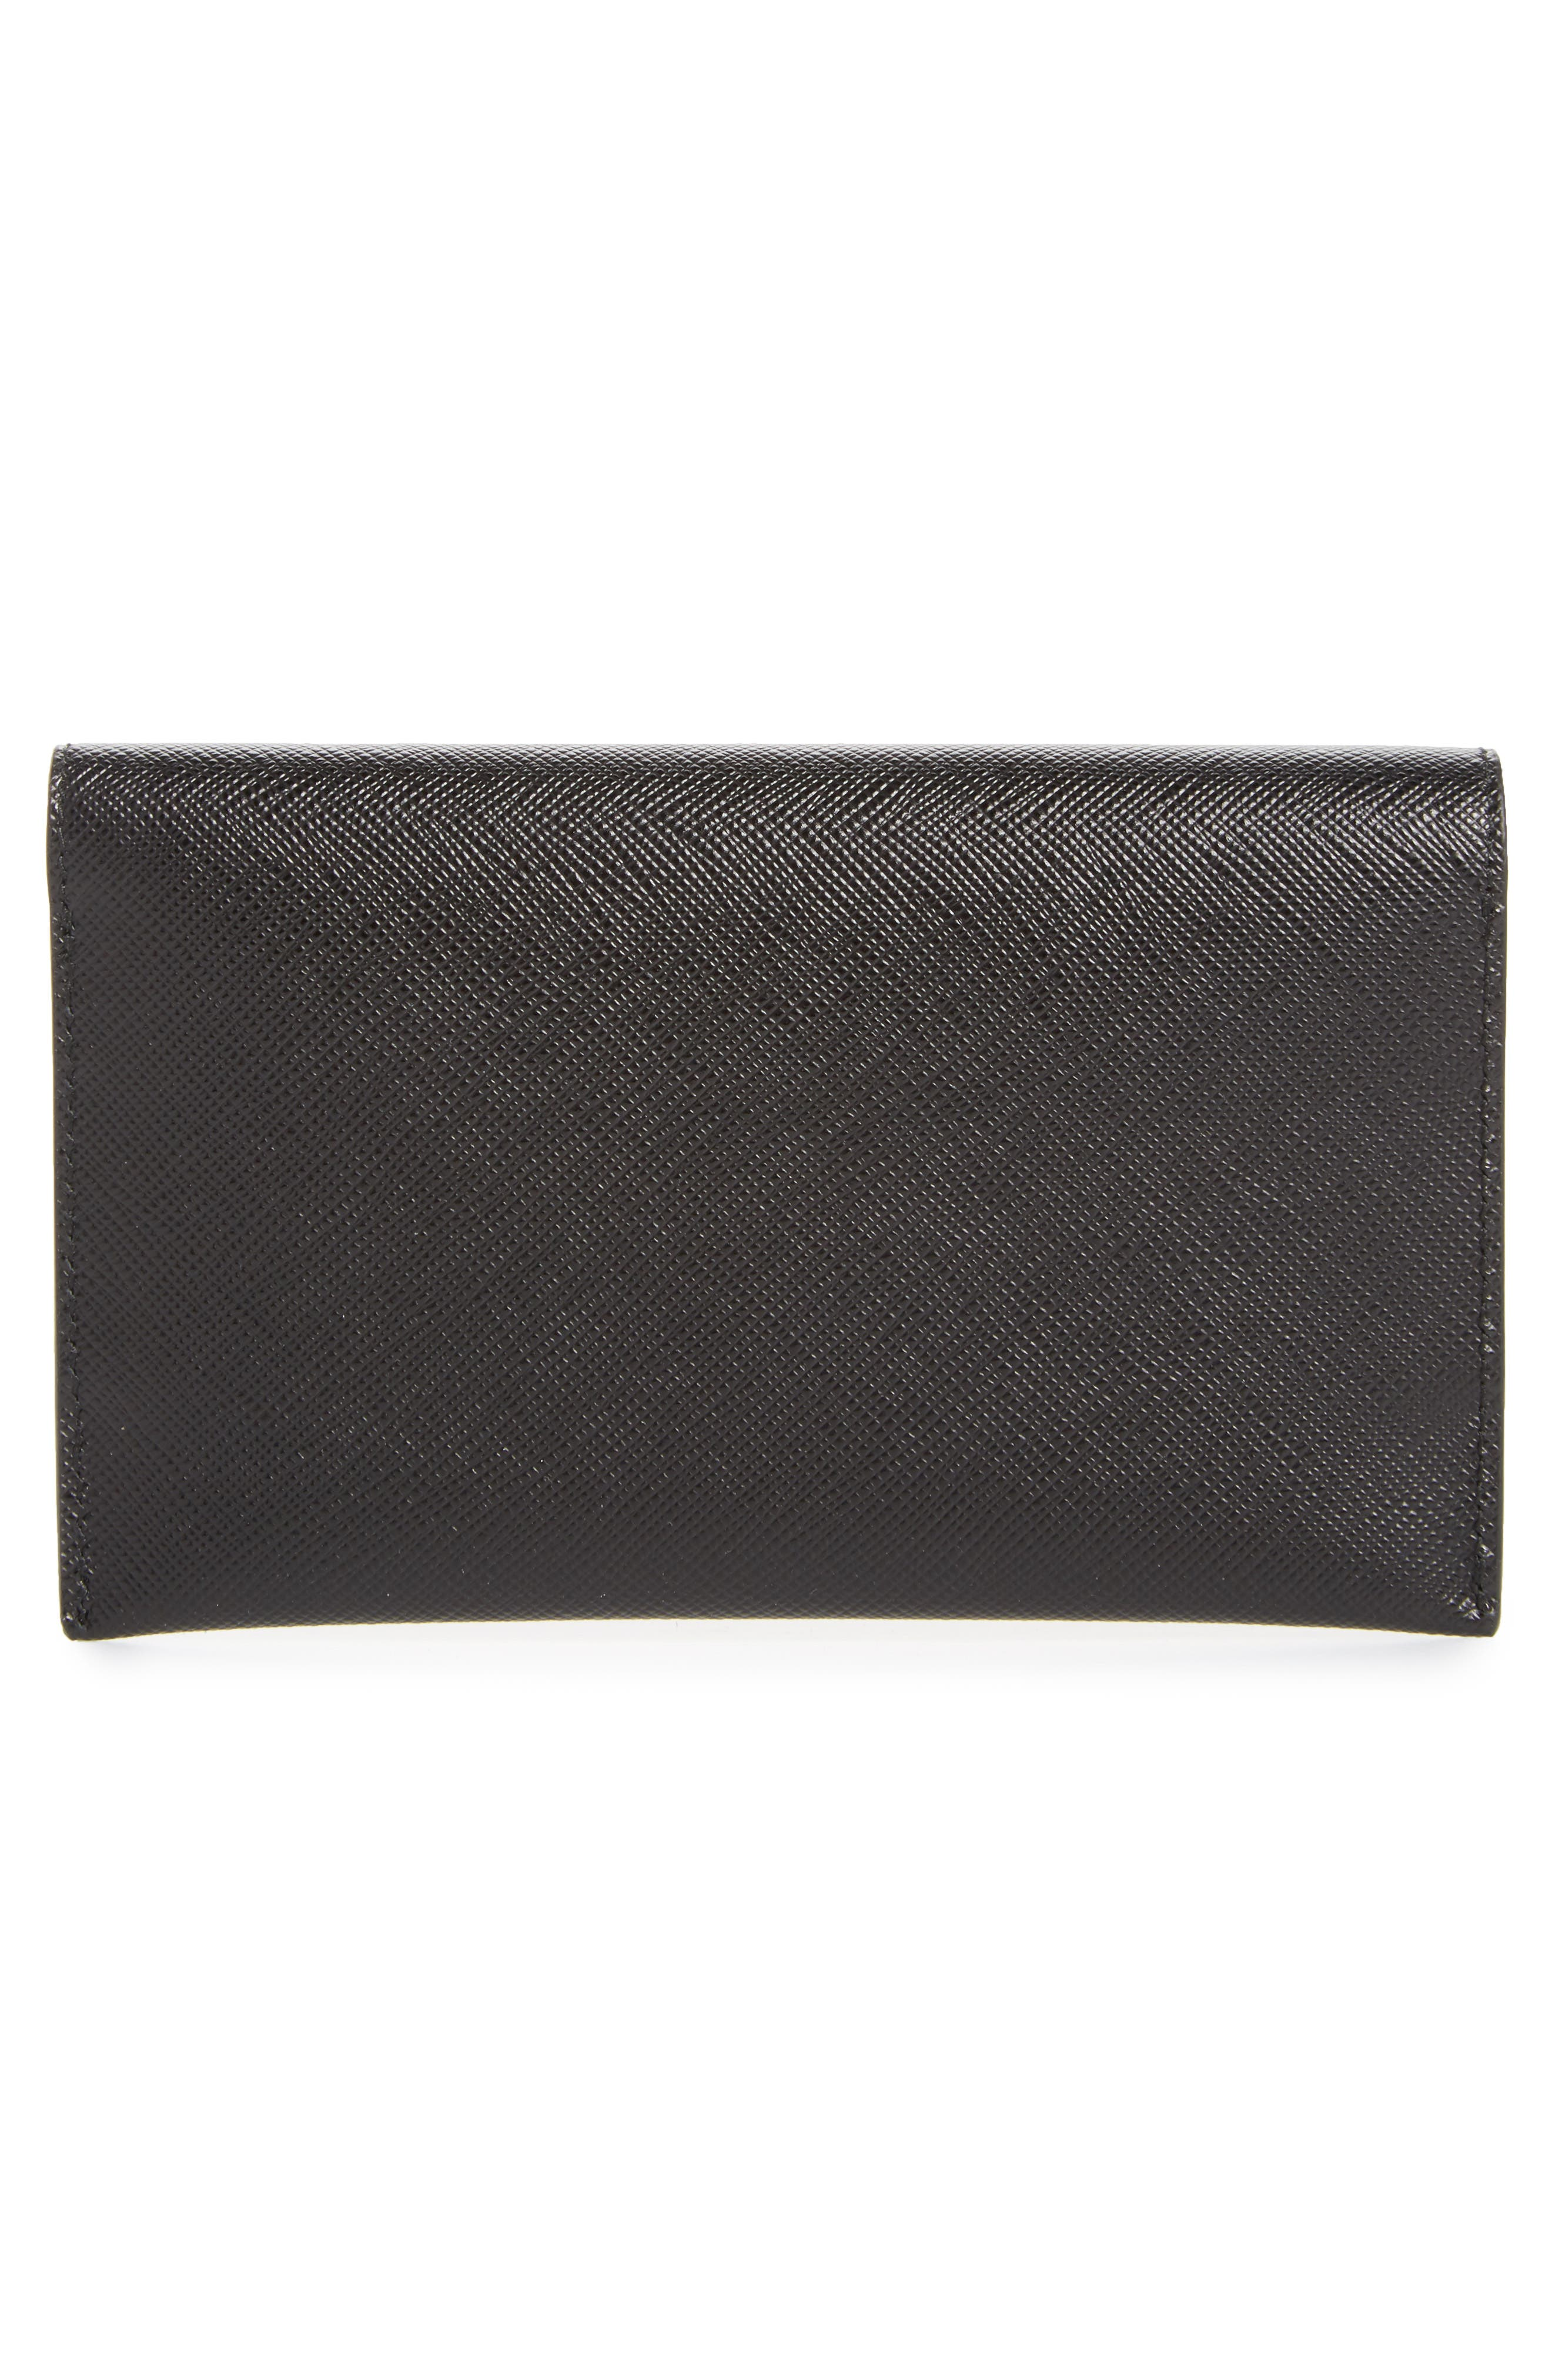 PRADA,                             Saffiano Leather Wallet,                             Alternate thumbnail 3, color,                             001